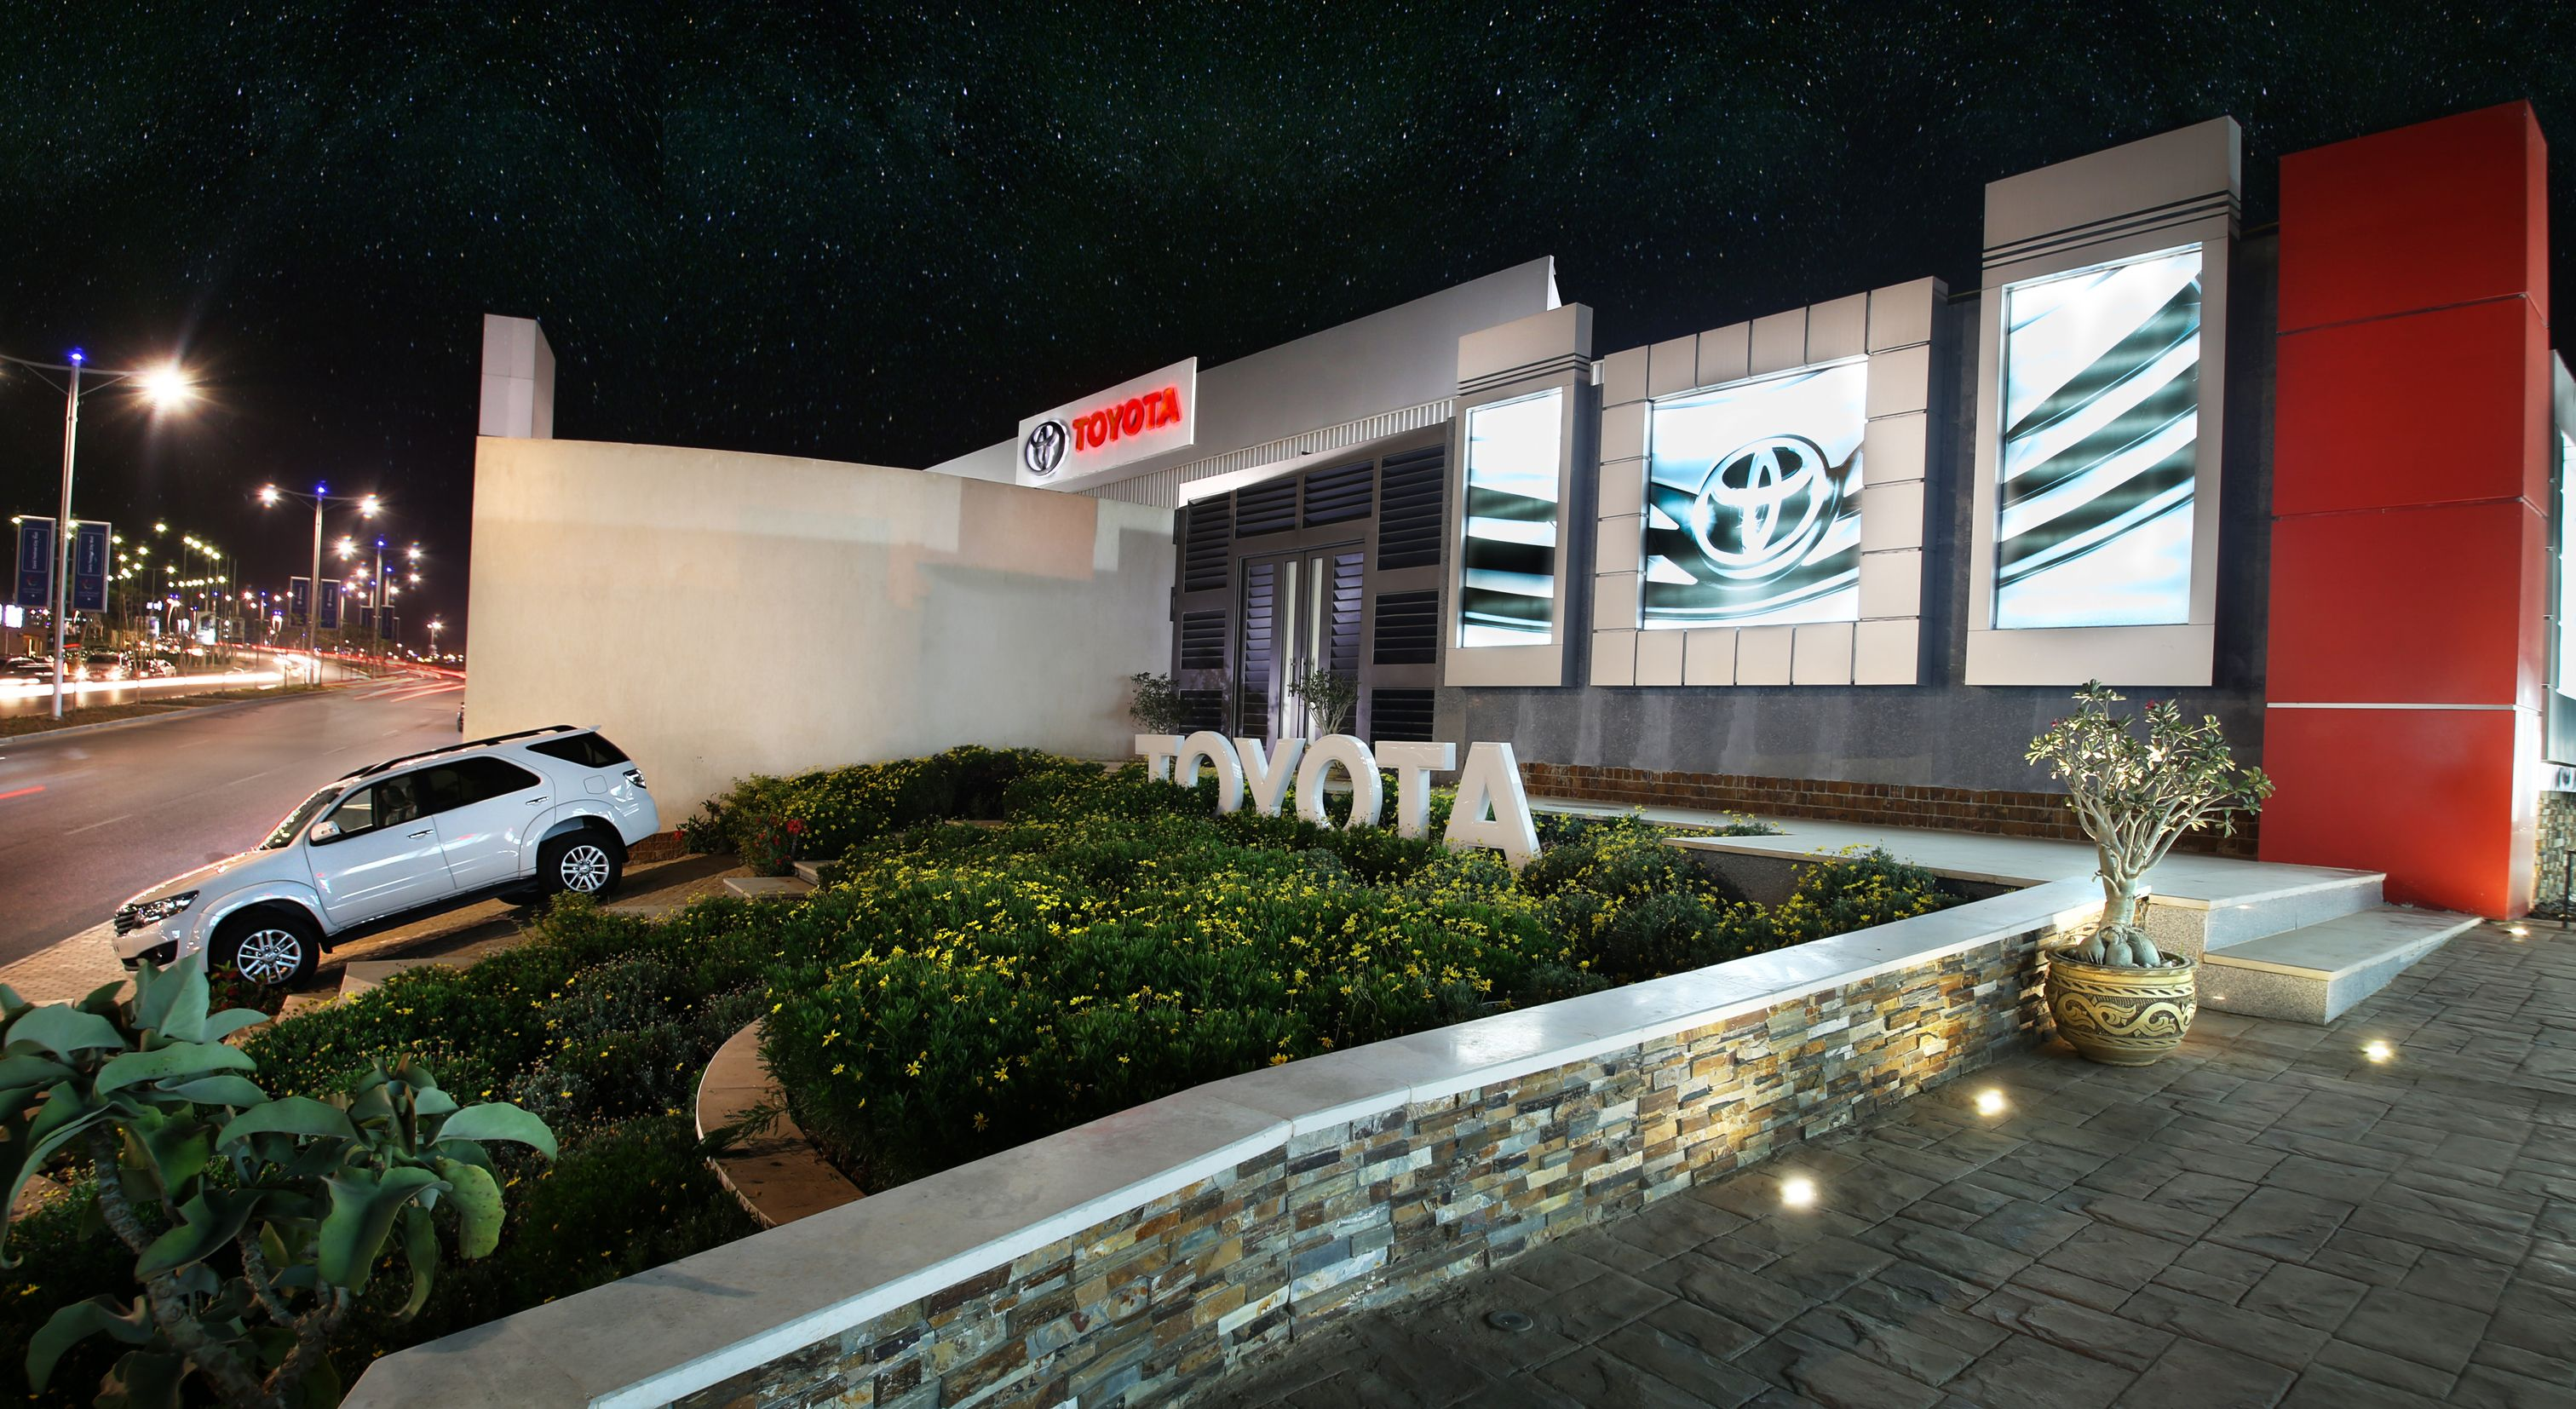 Toyota Passage Cairo Festival City New Cairo Egypt Sharing Toyota Egypt Success New Concepts Conc Construction Drawings Cairo Festival House Styles